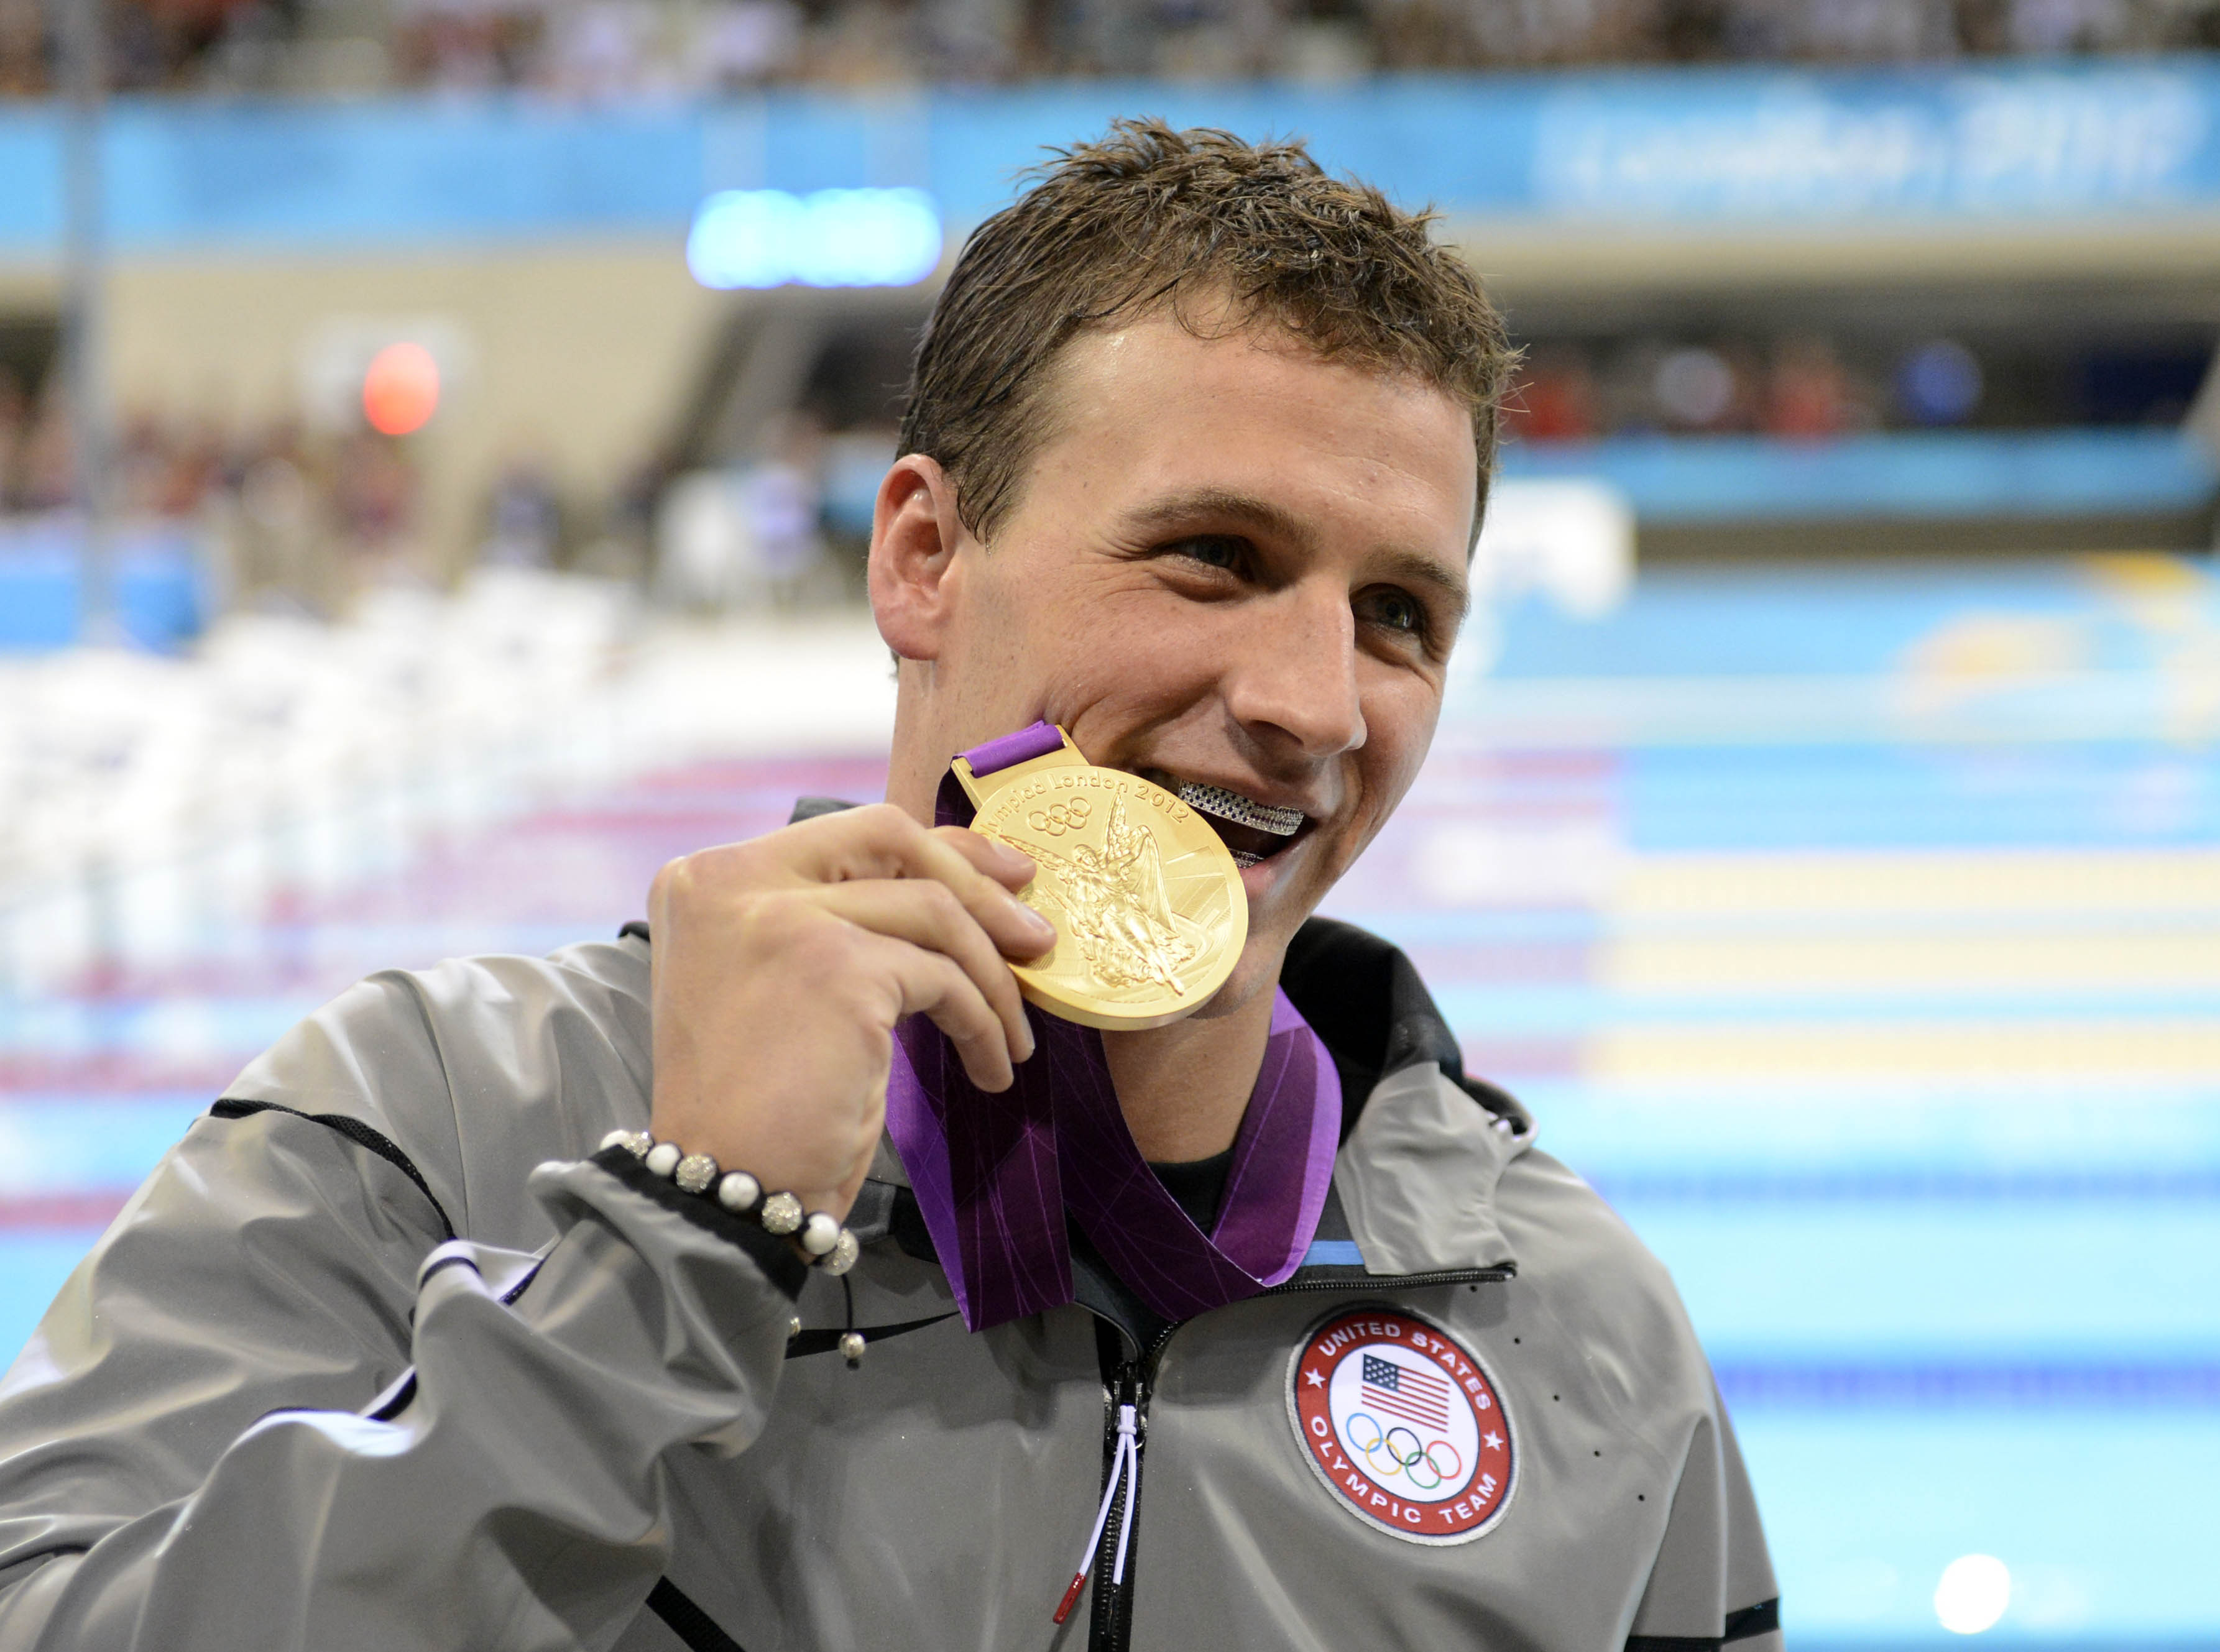 Is it possible Claudia could be immune to the charms of eight-time Olympic medalist Ryan Lochte?